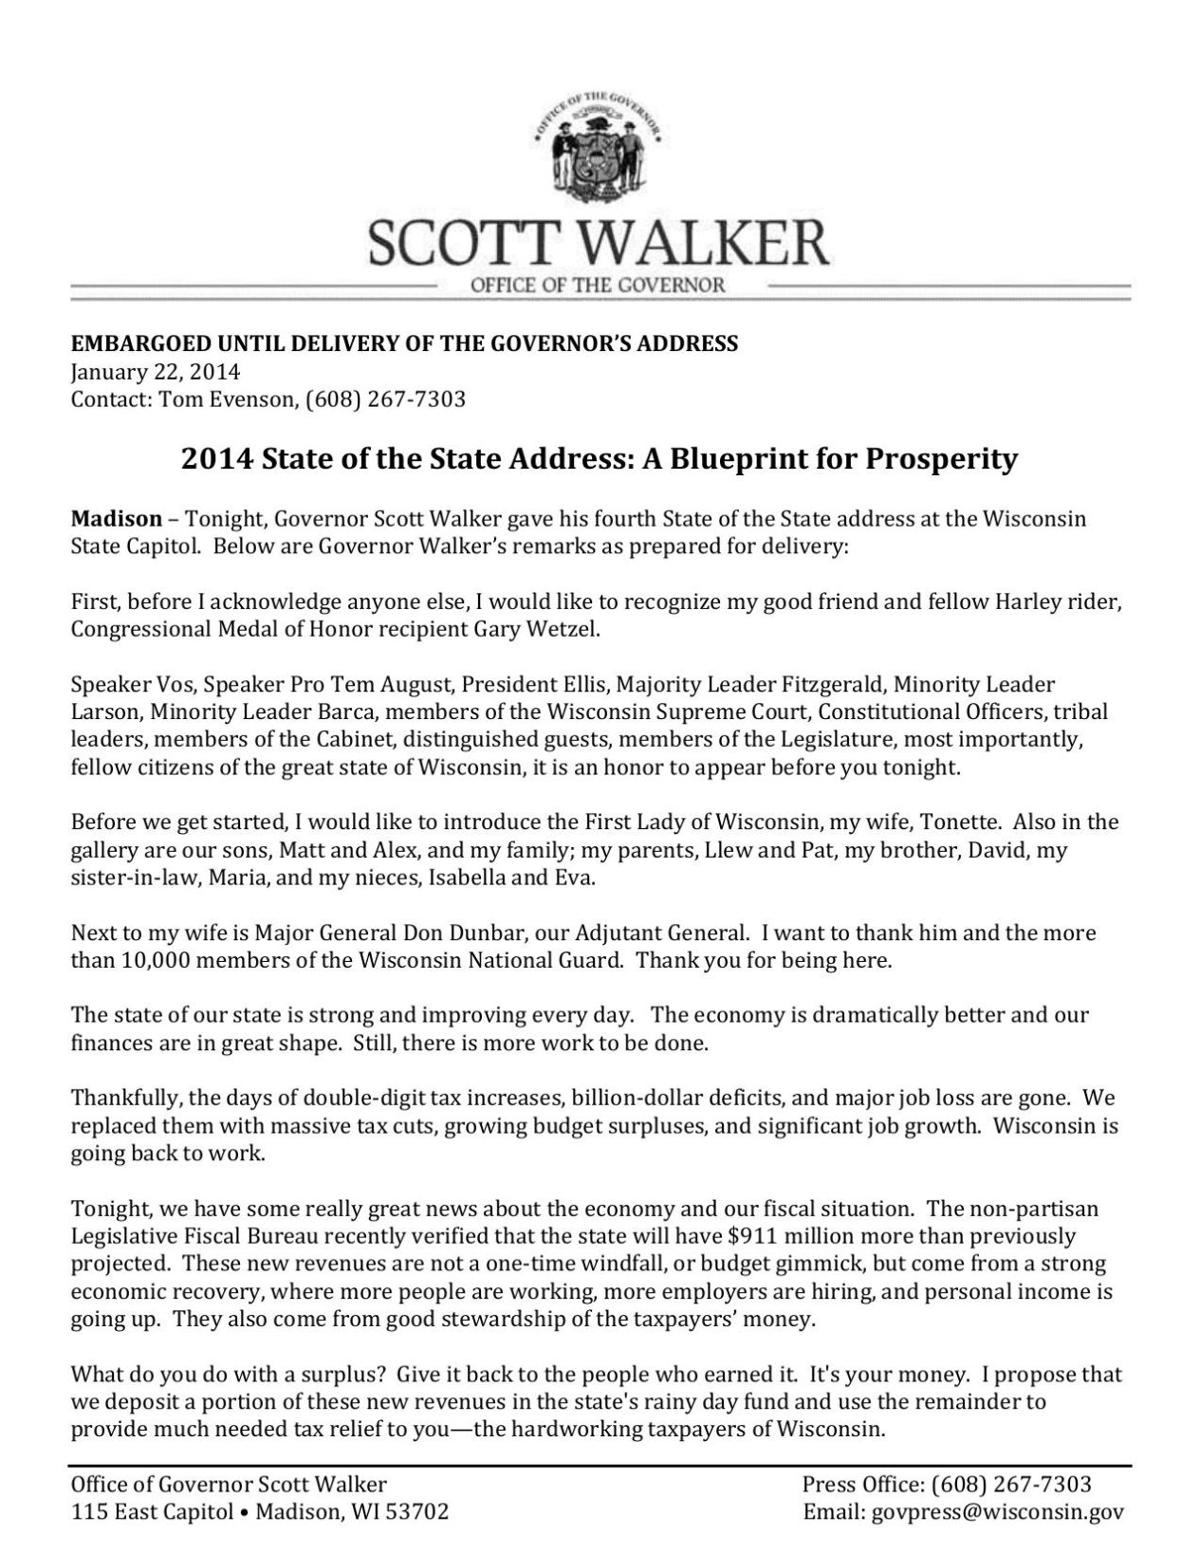 Read Walker's State of the State address